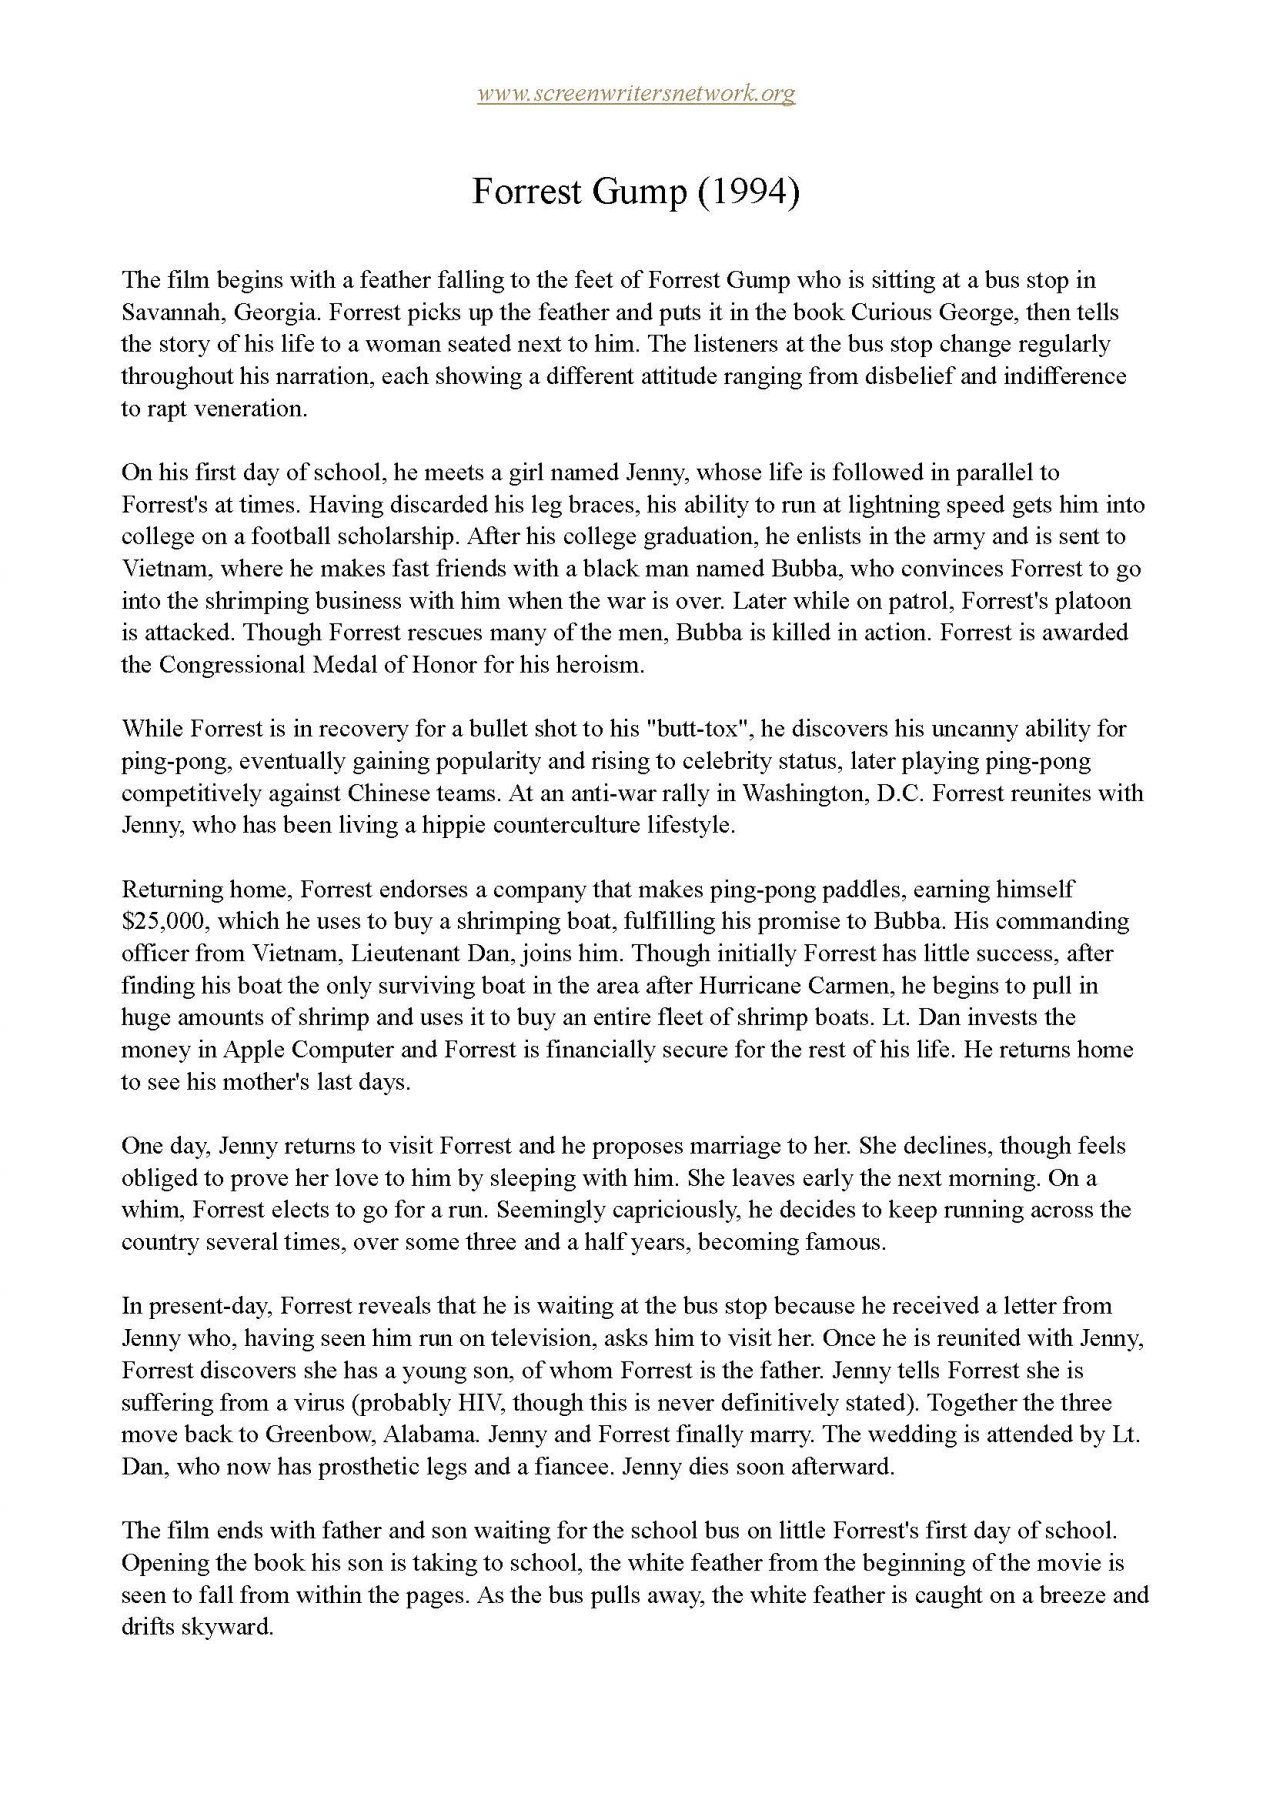 Forrest Gump One Page Synopsis